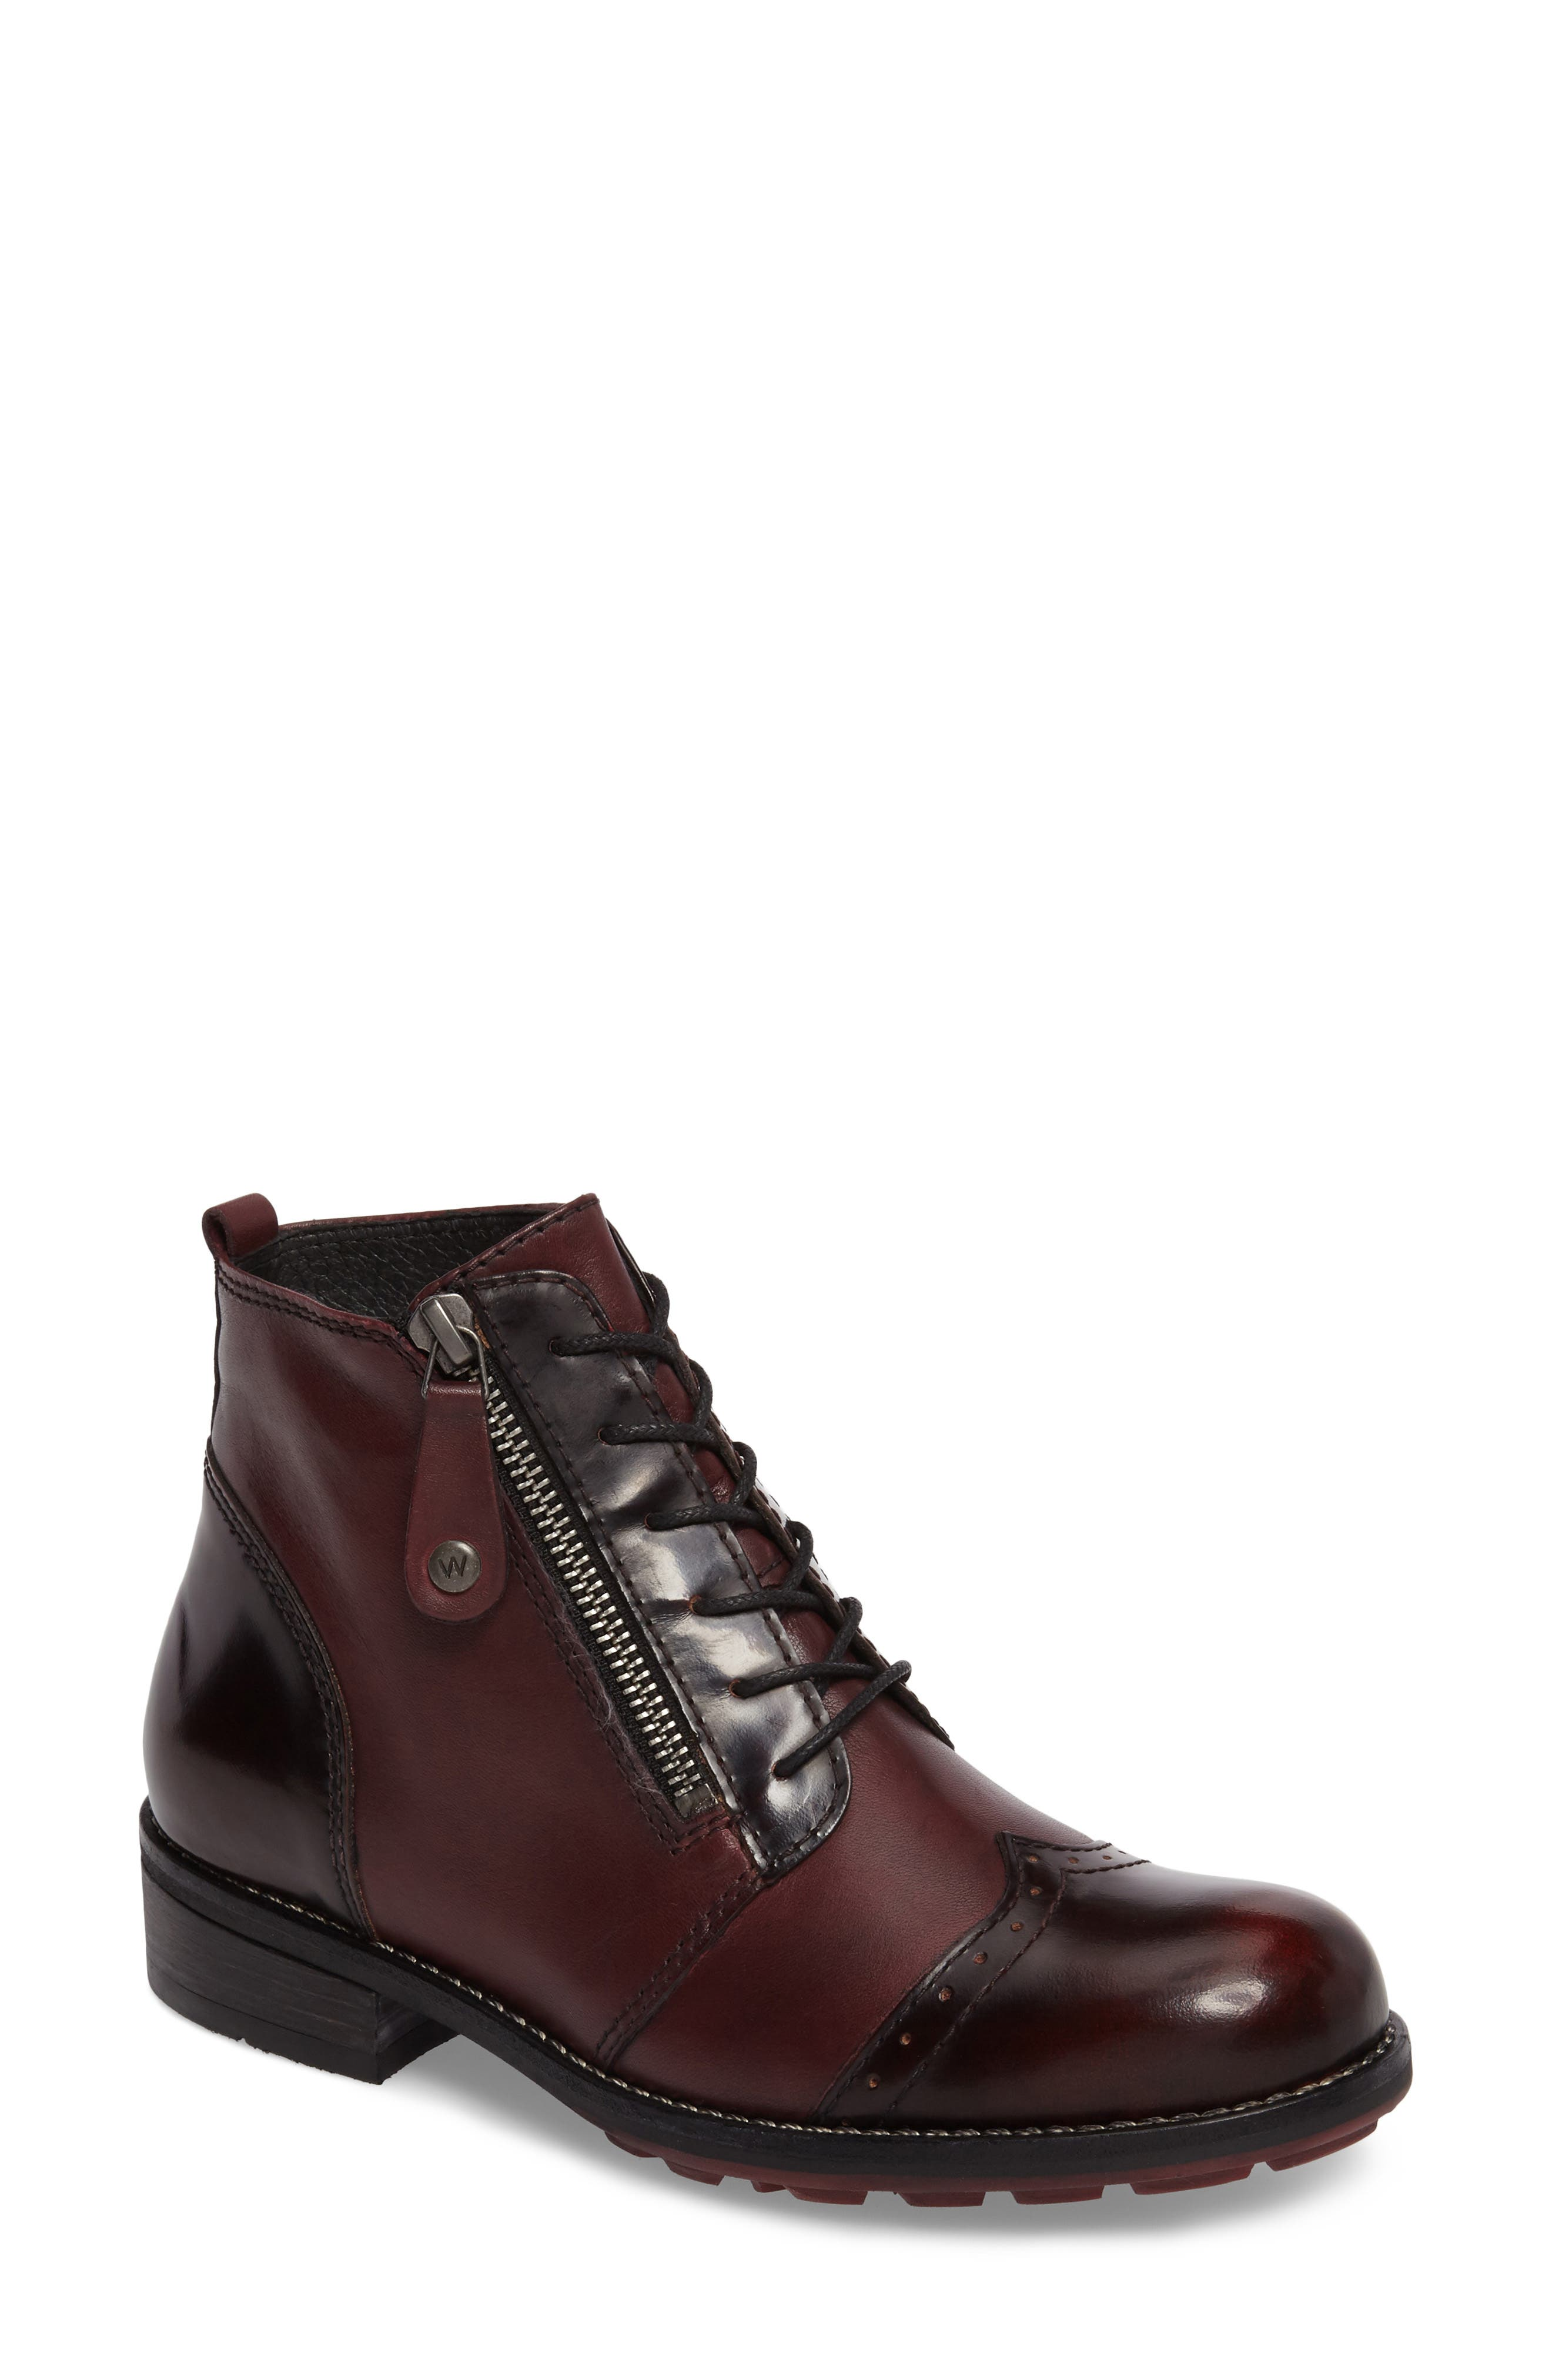 Wolky Millstream Boot - Red